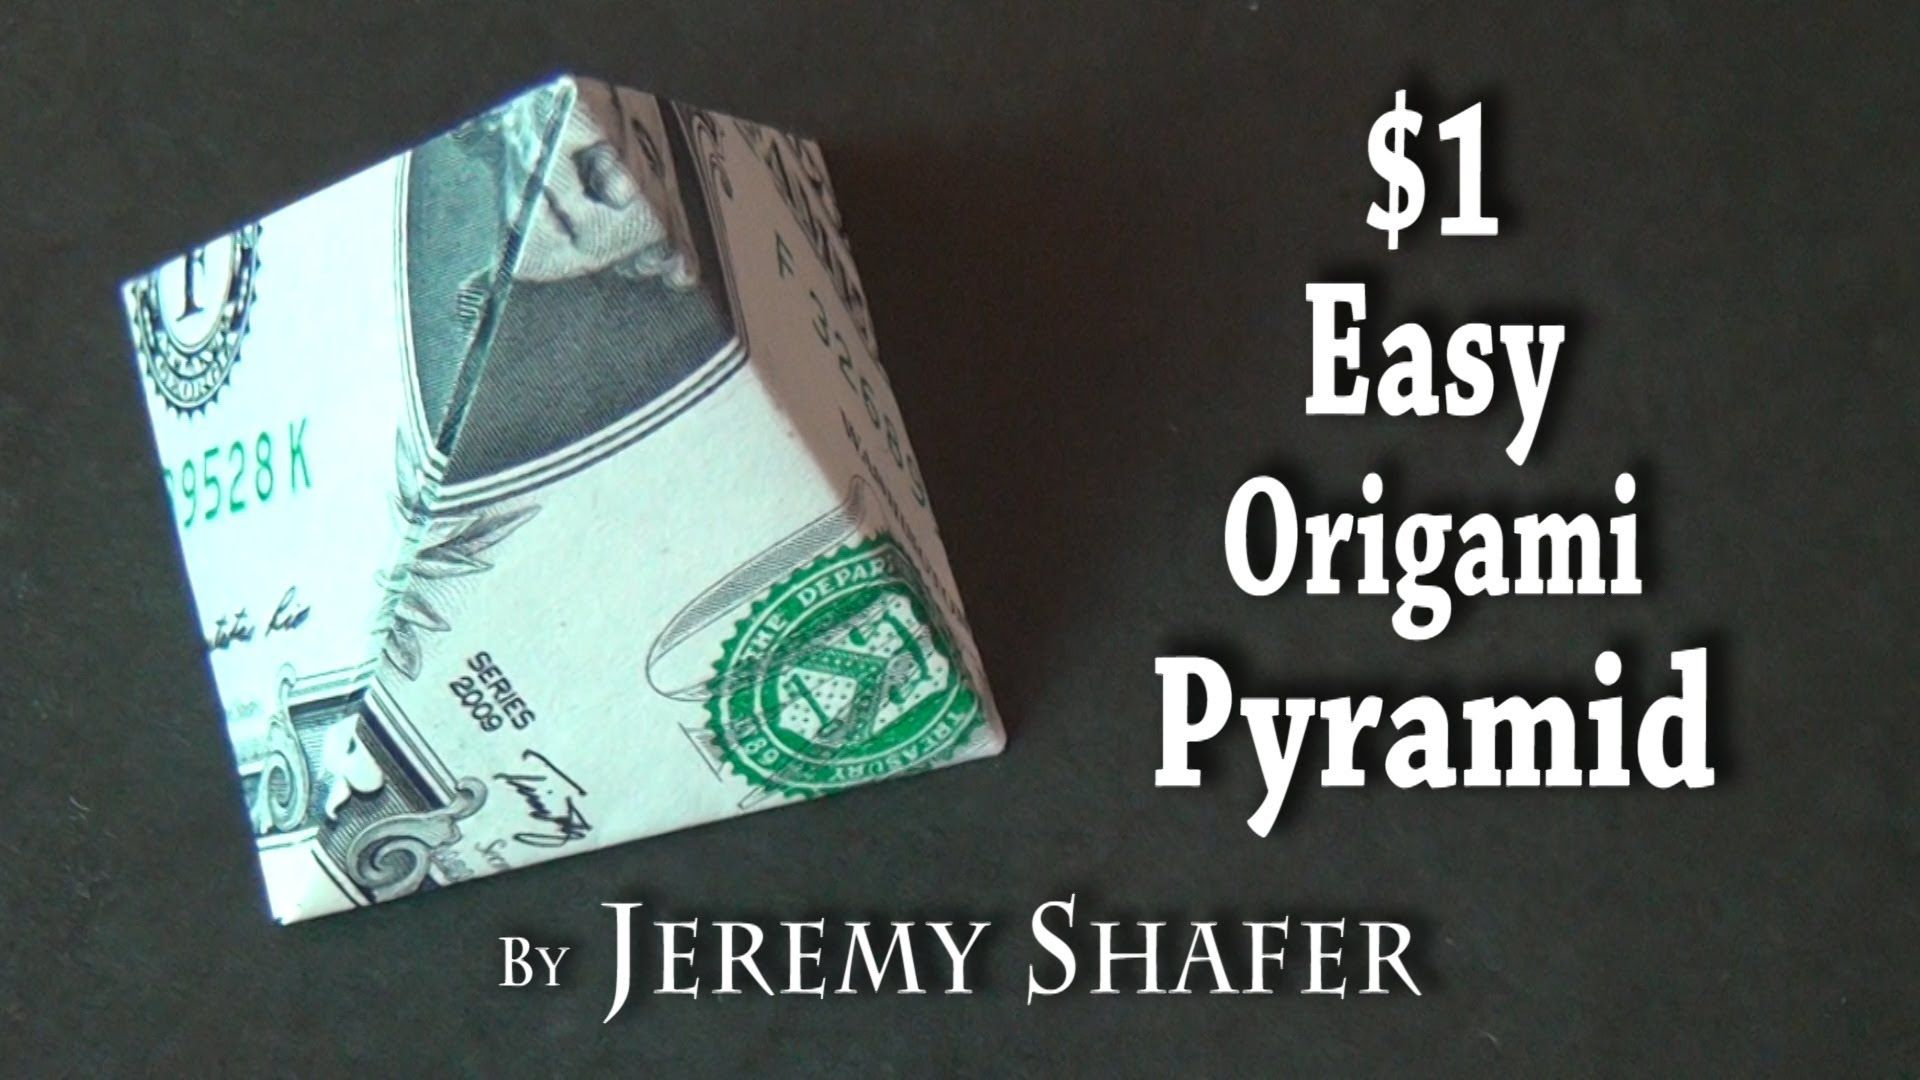 Origami money folding instructions cool ideas - Explore Origami Ideas Easy Origami And More